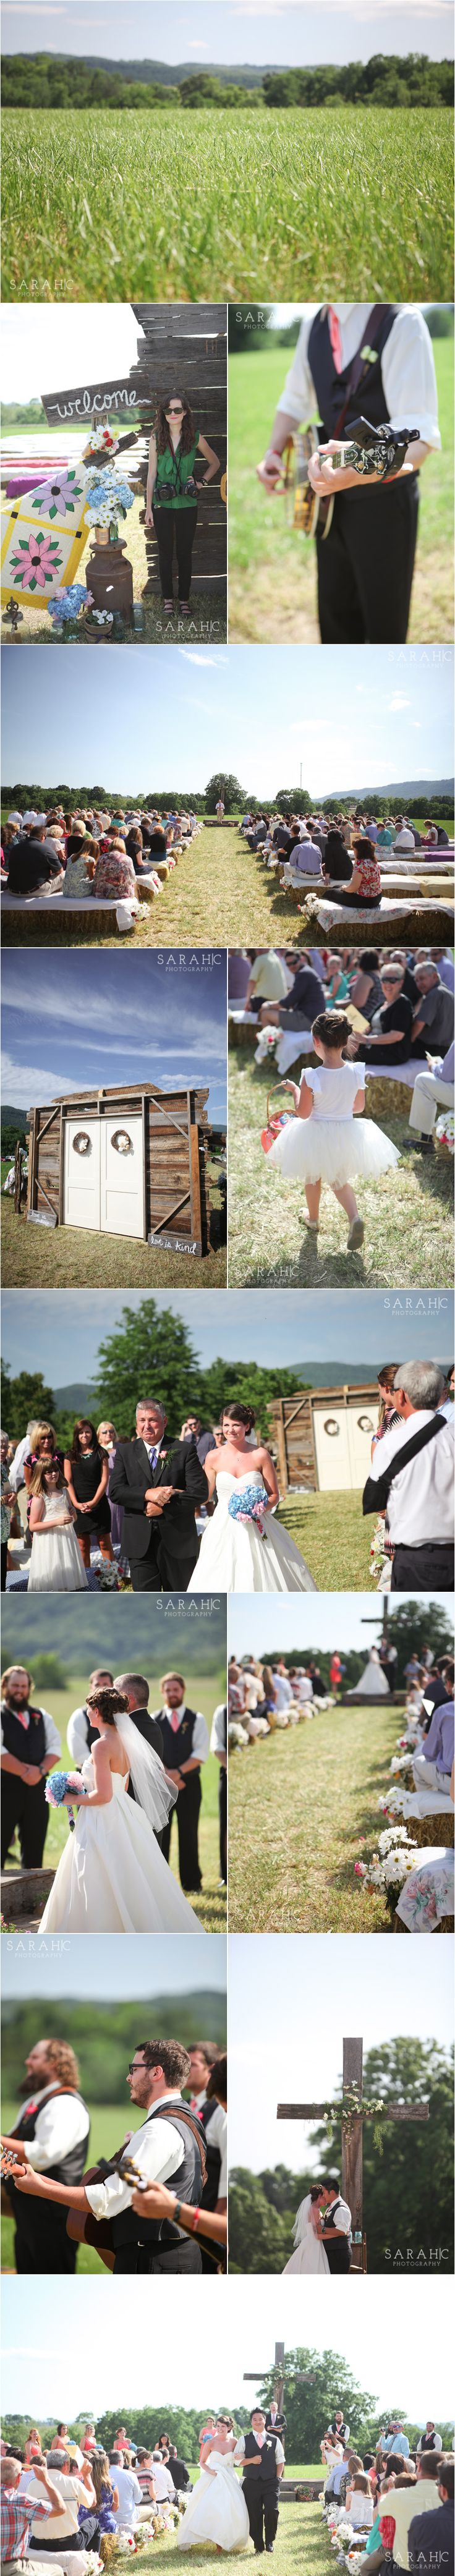 Tennessee Wedding | Ceremony in a Field | Hay Bales | Barn Wood | Voted Knoxville's Best Wedding Photographer | Sarah C. Photography